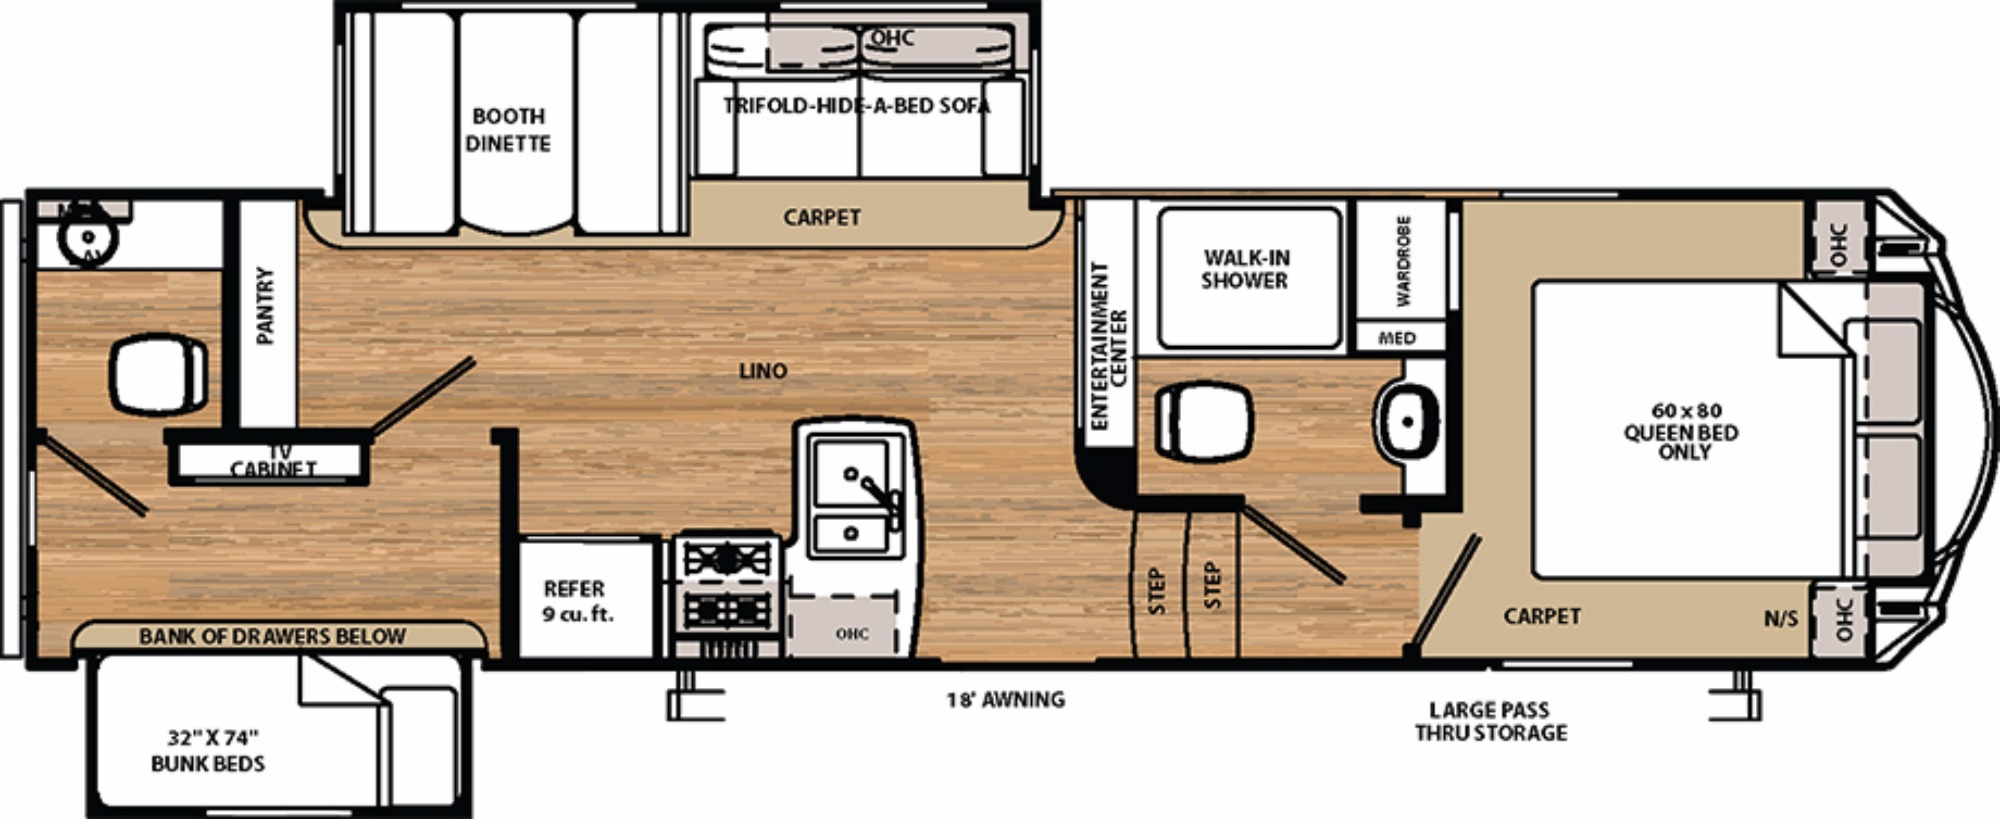 View Floor Plan for 2017 FOREST RIVER SIERRA HT 3350BH